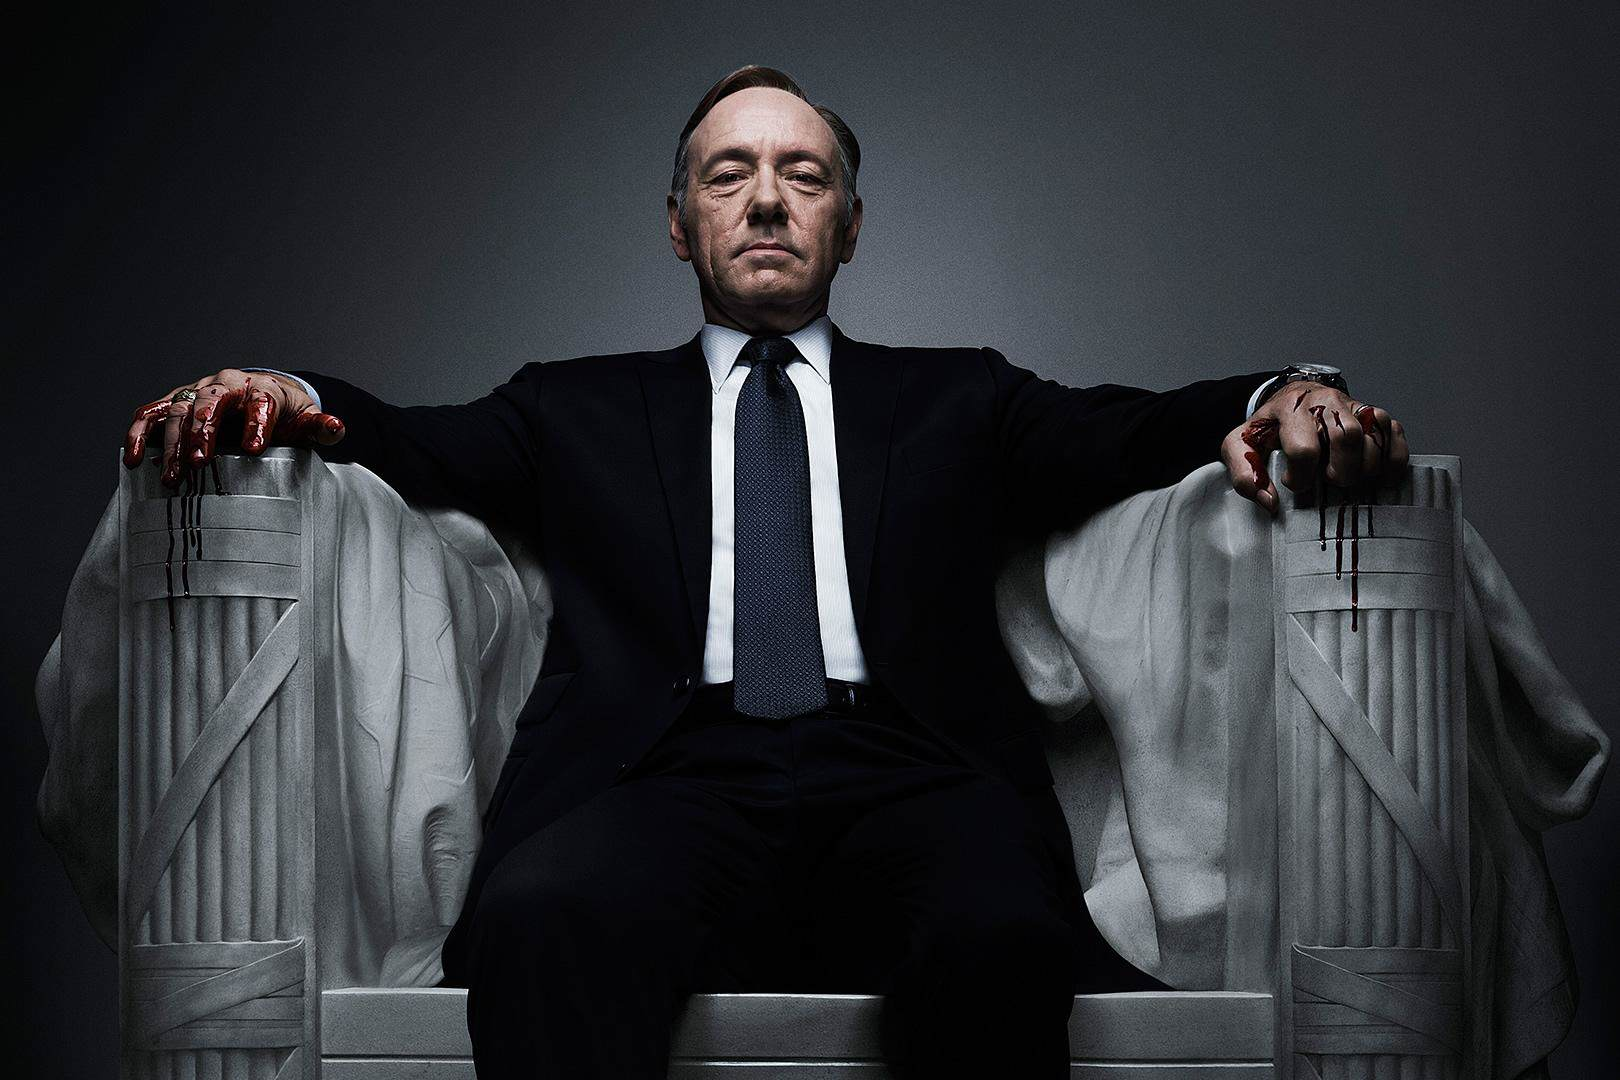 Bill Clinton Supposedly Says House Of Cards Is 99% Real MTI4OTk3NzIyMTkwNjgxMzYy